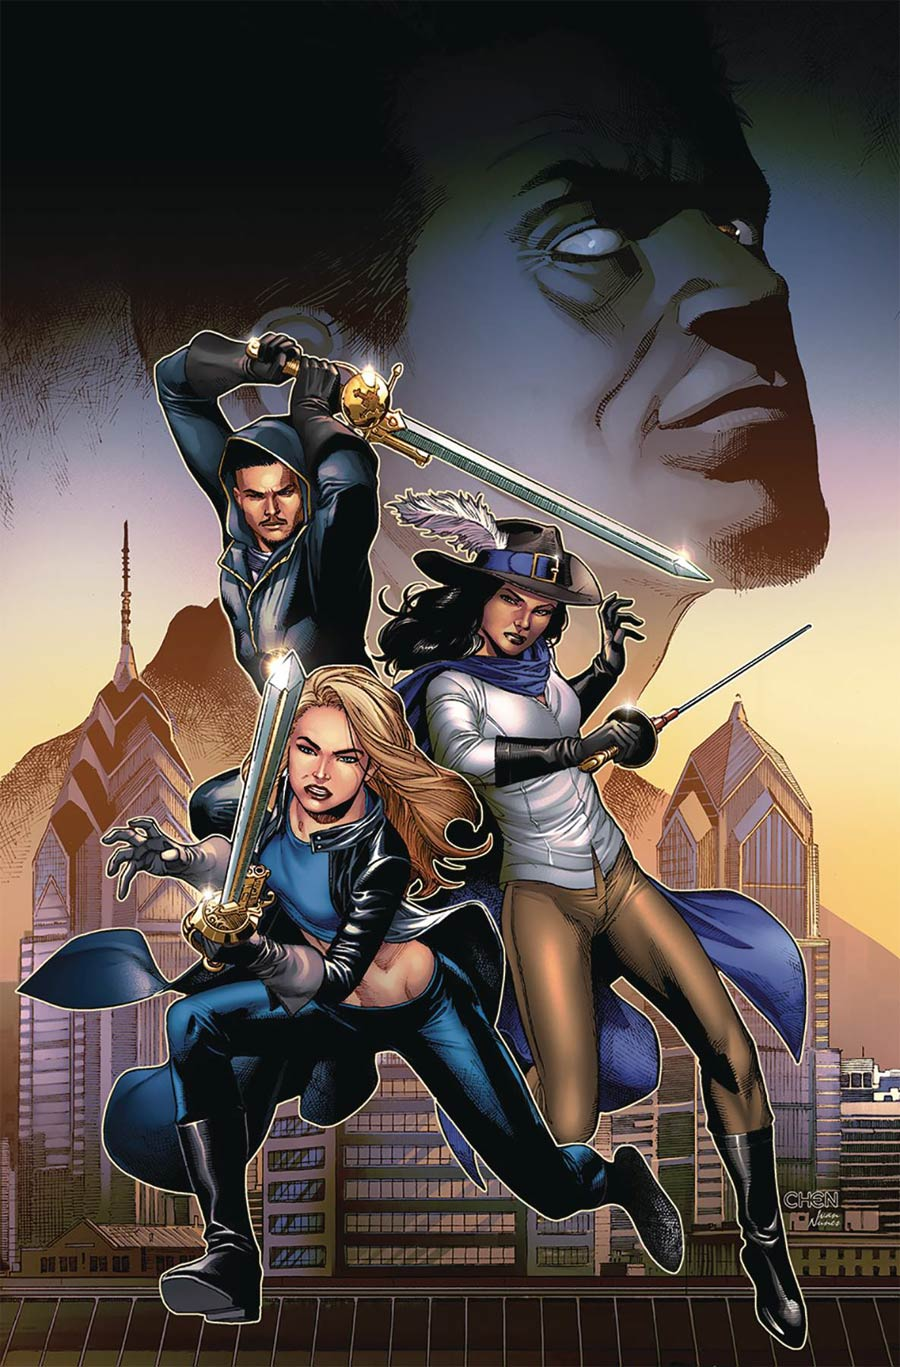 Grimm Fairy Tales Presents Musketeers #3 Cover A Sean Chen